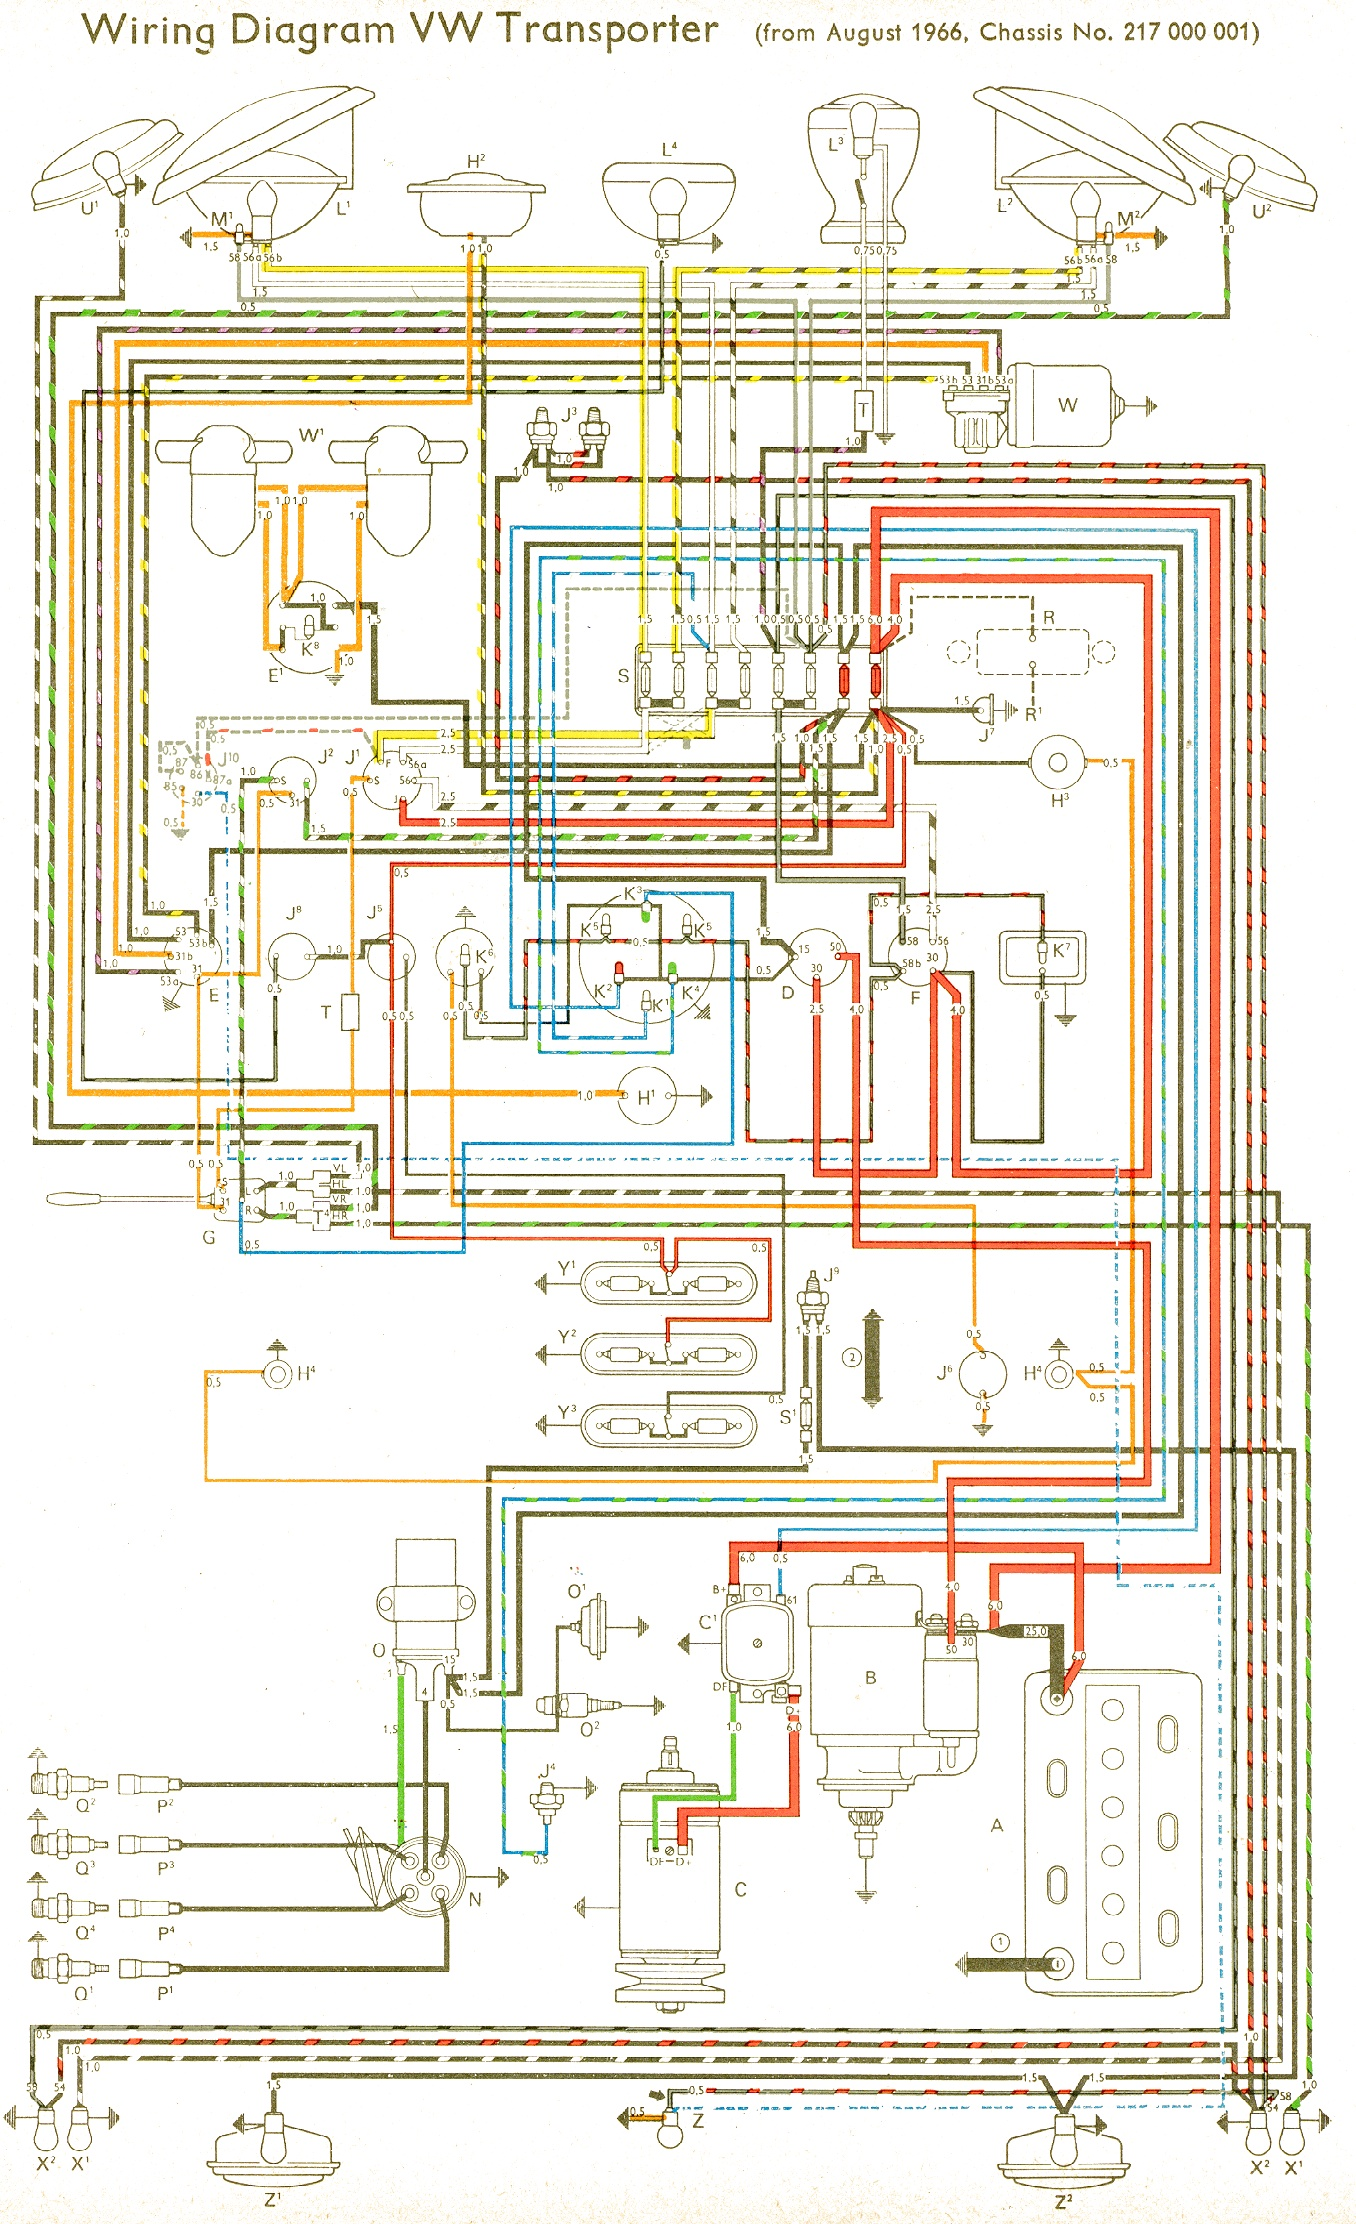 5ae9 blue bird bus wiring diagrams | wiring resources  wiring resources